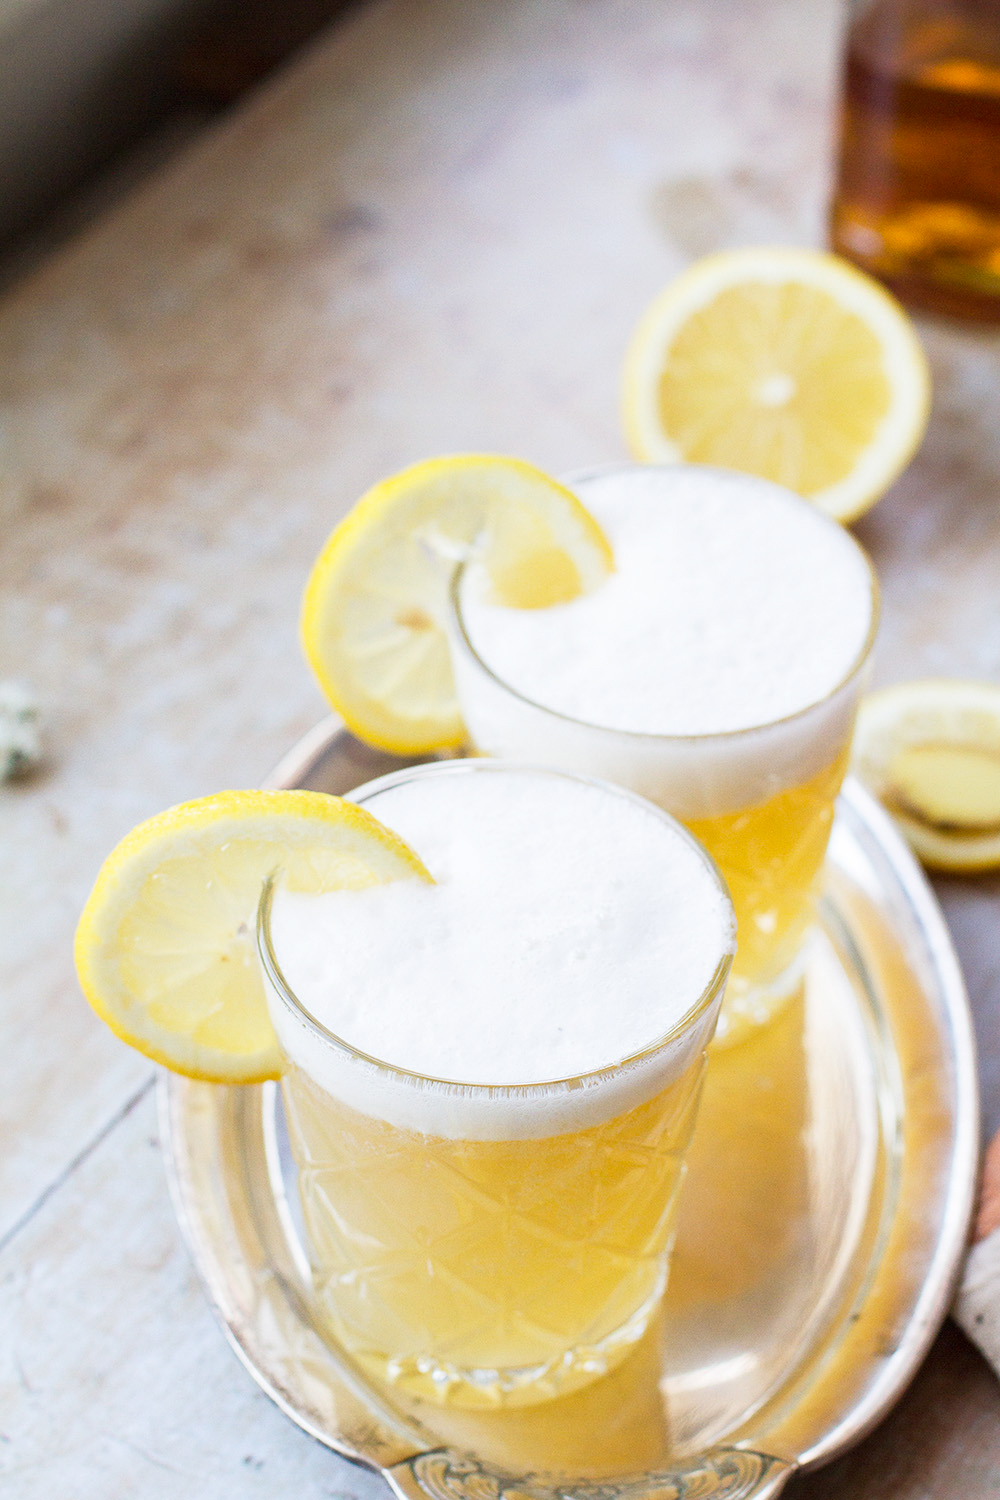 Two glasses with whiskey sour and a frothy top, garnished with lemon slices.